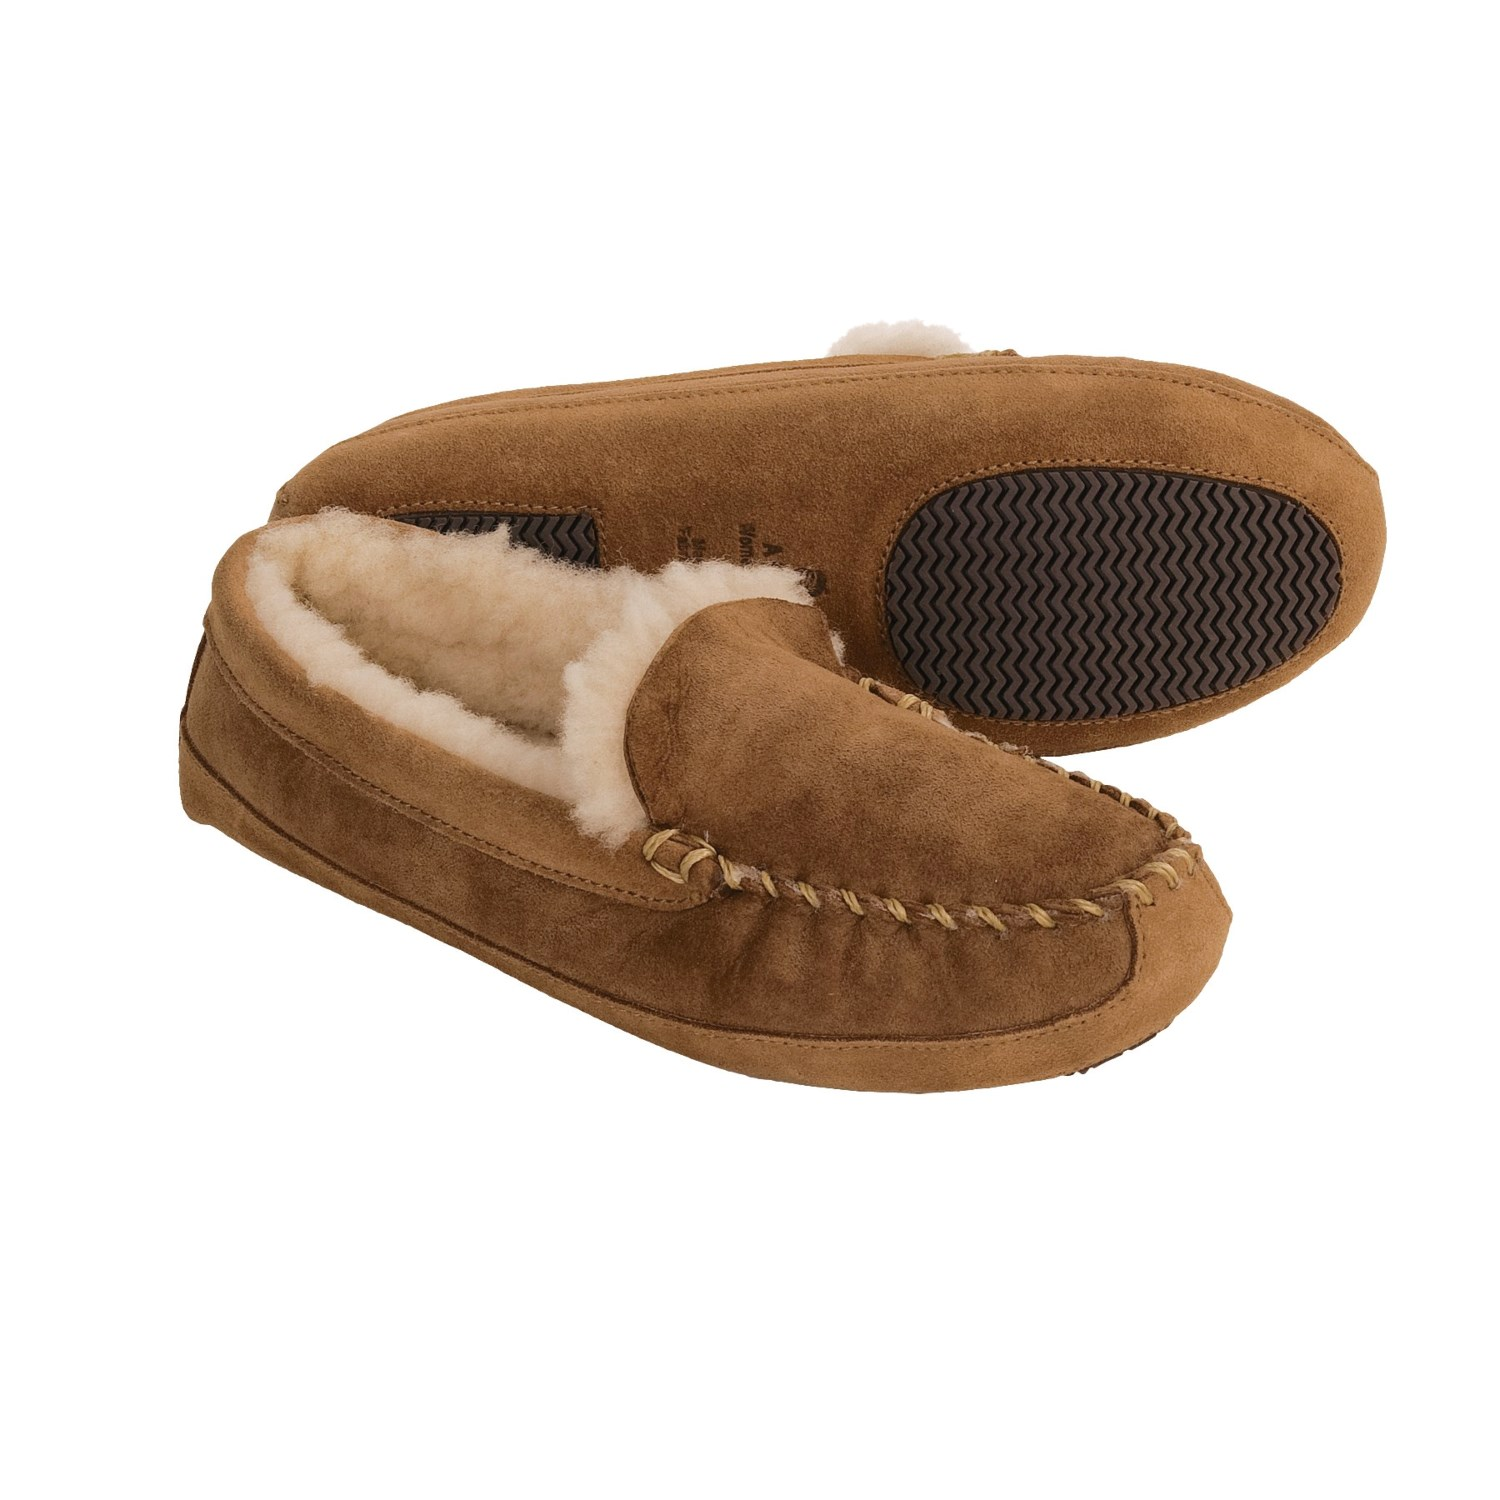 Acorn Madison Sheepskin Moccasin Slippers (For Women) - Save 36